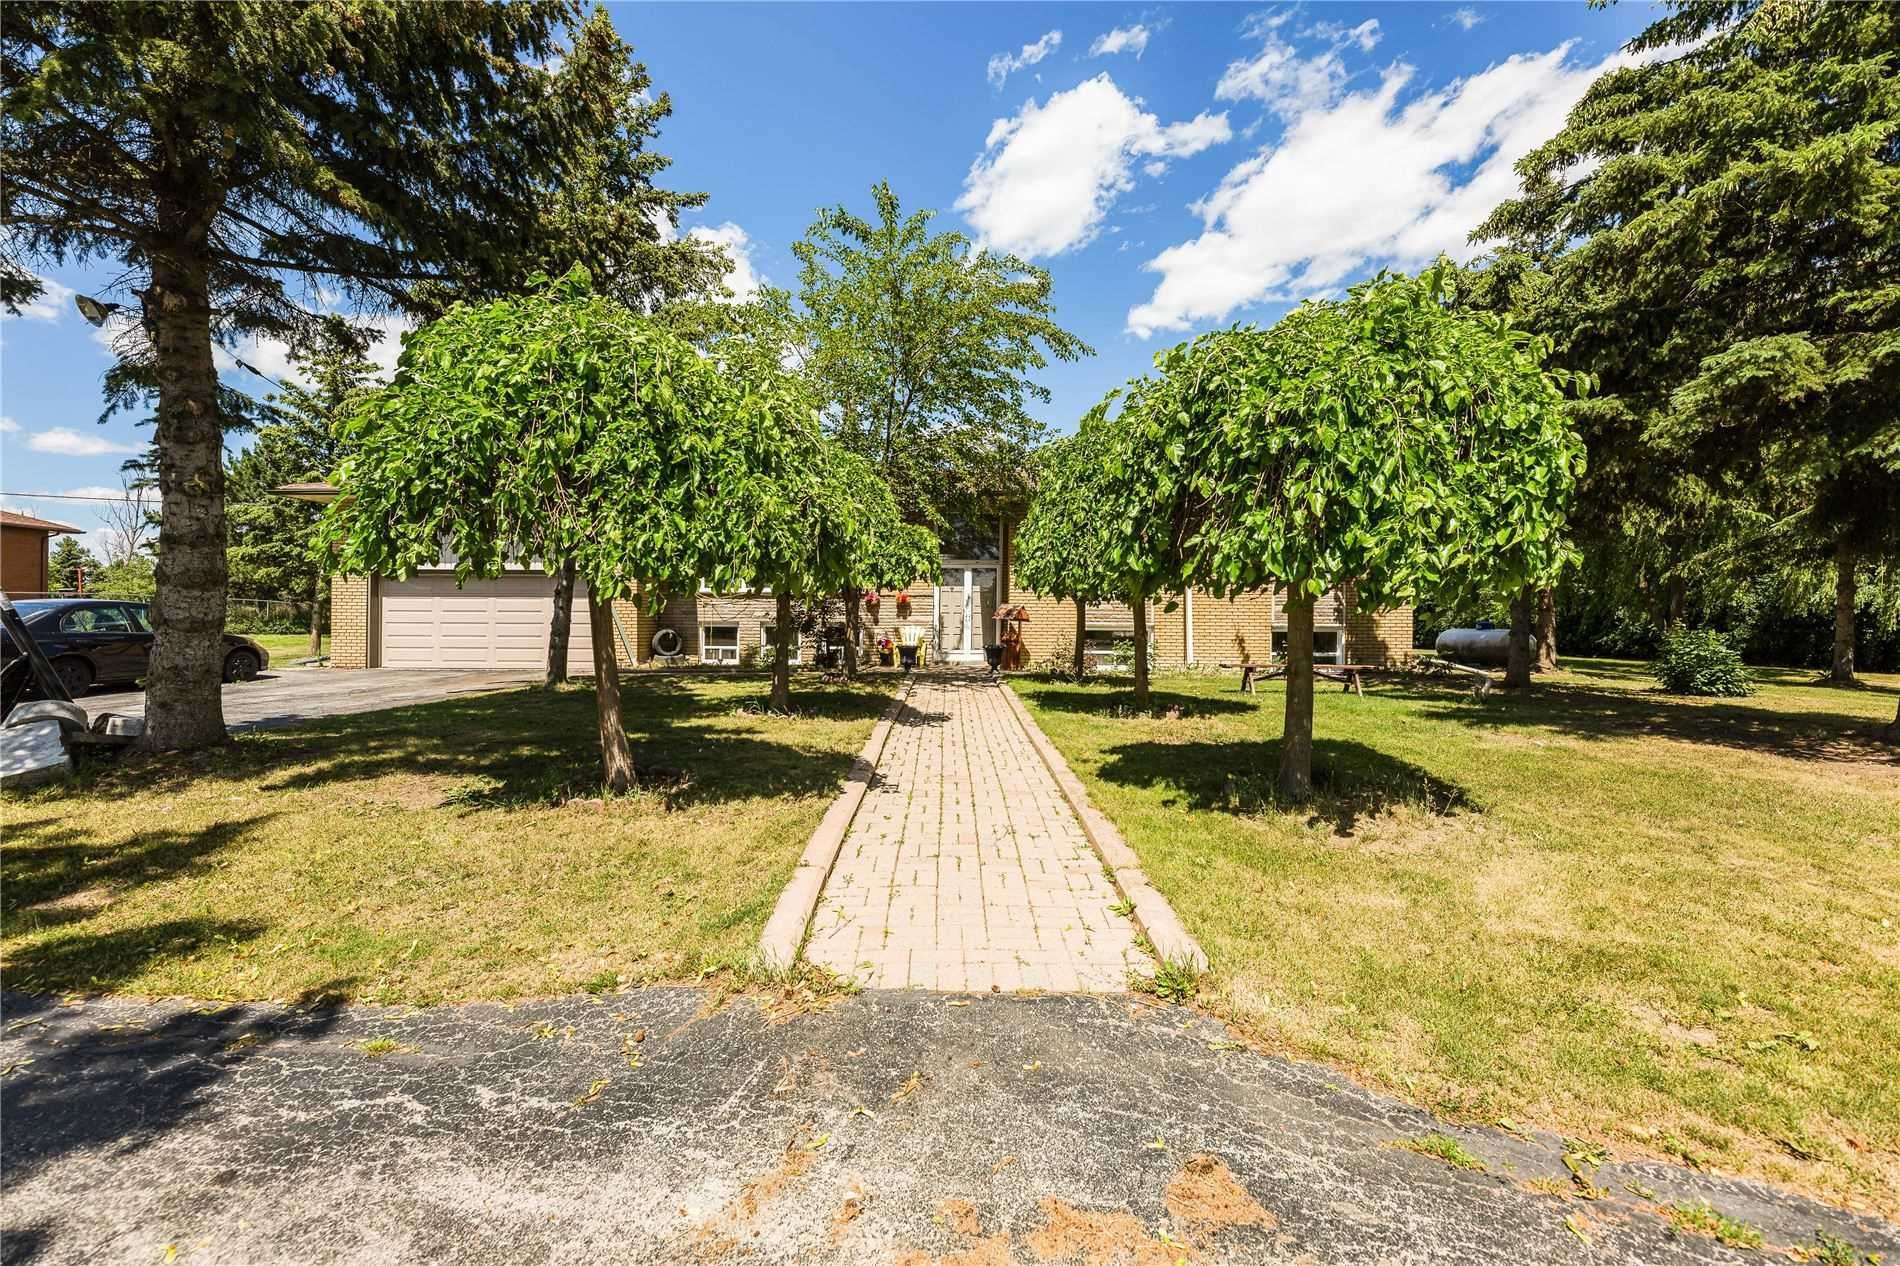 12055 Humber Station Rd, Caledon, ON L7E3S3 - MLS#: W5395731